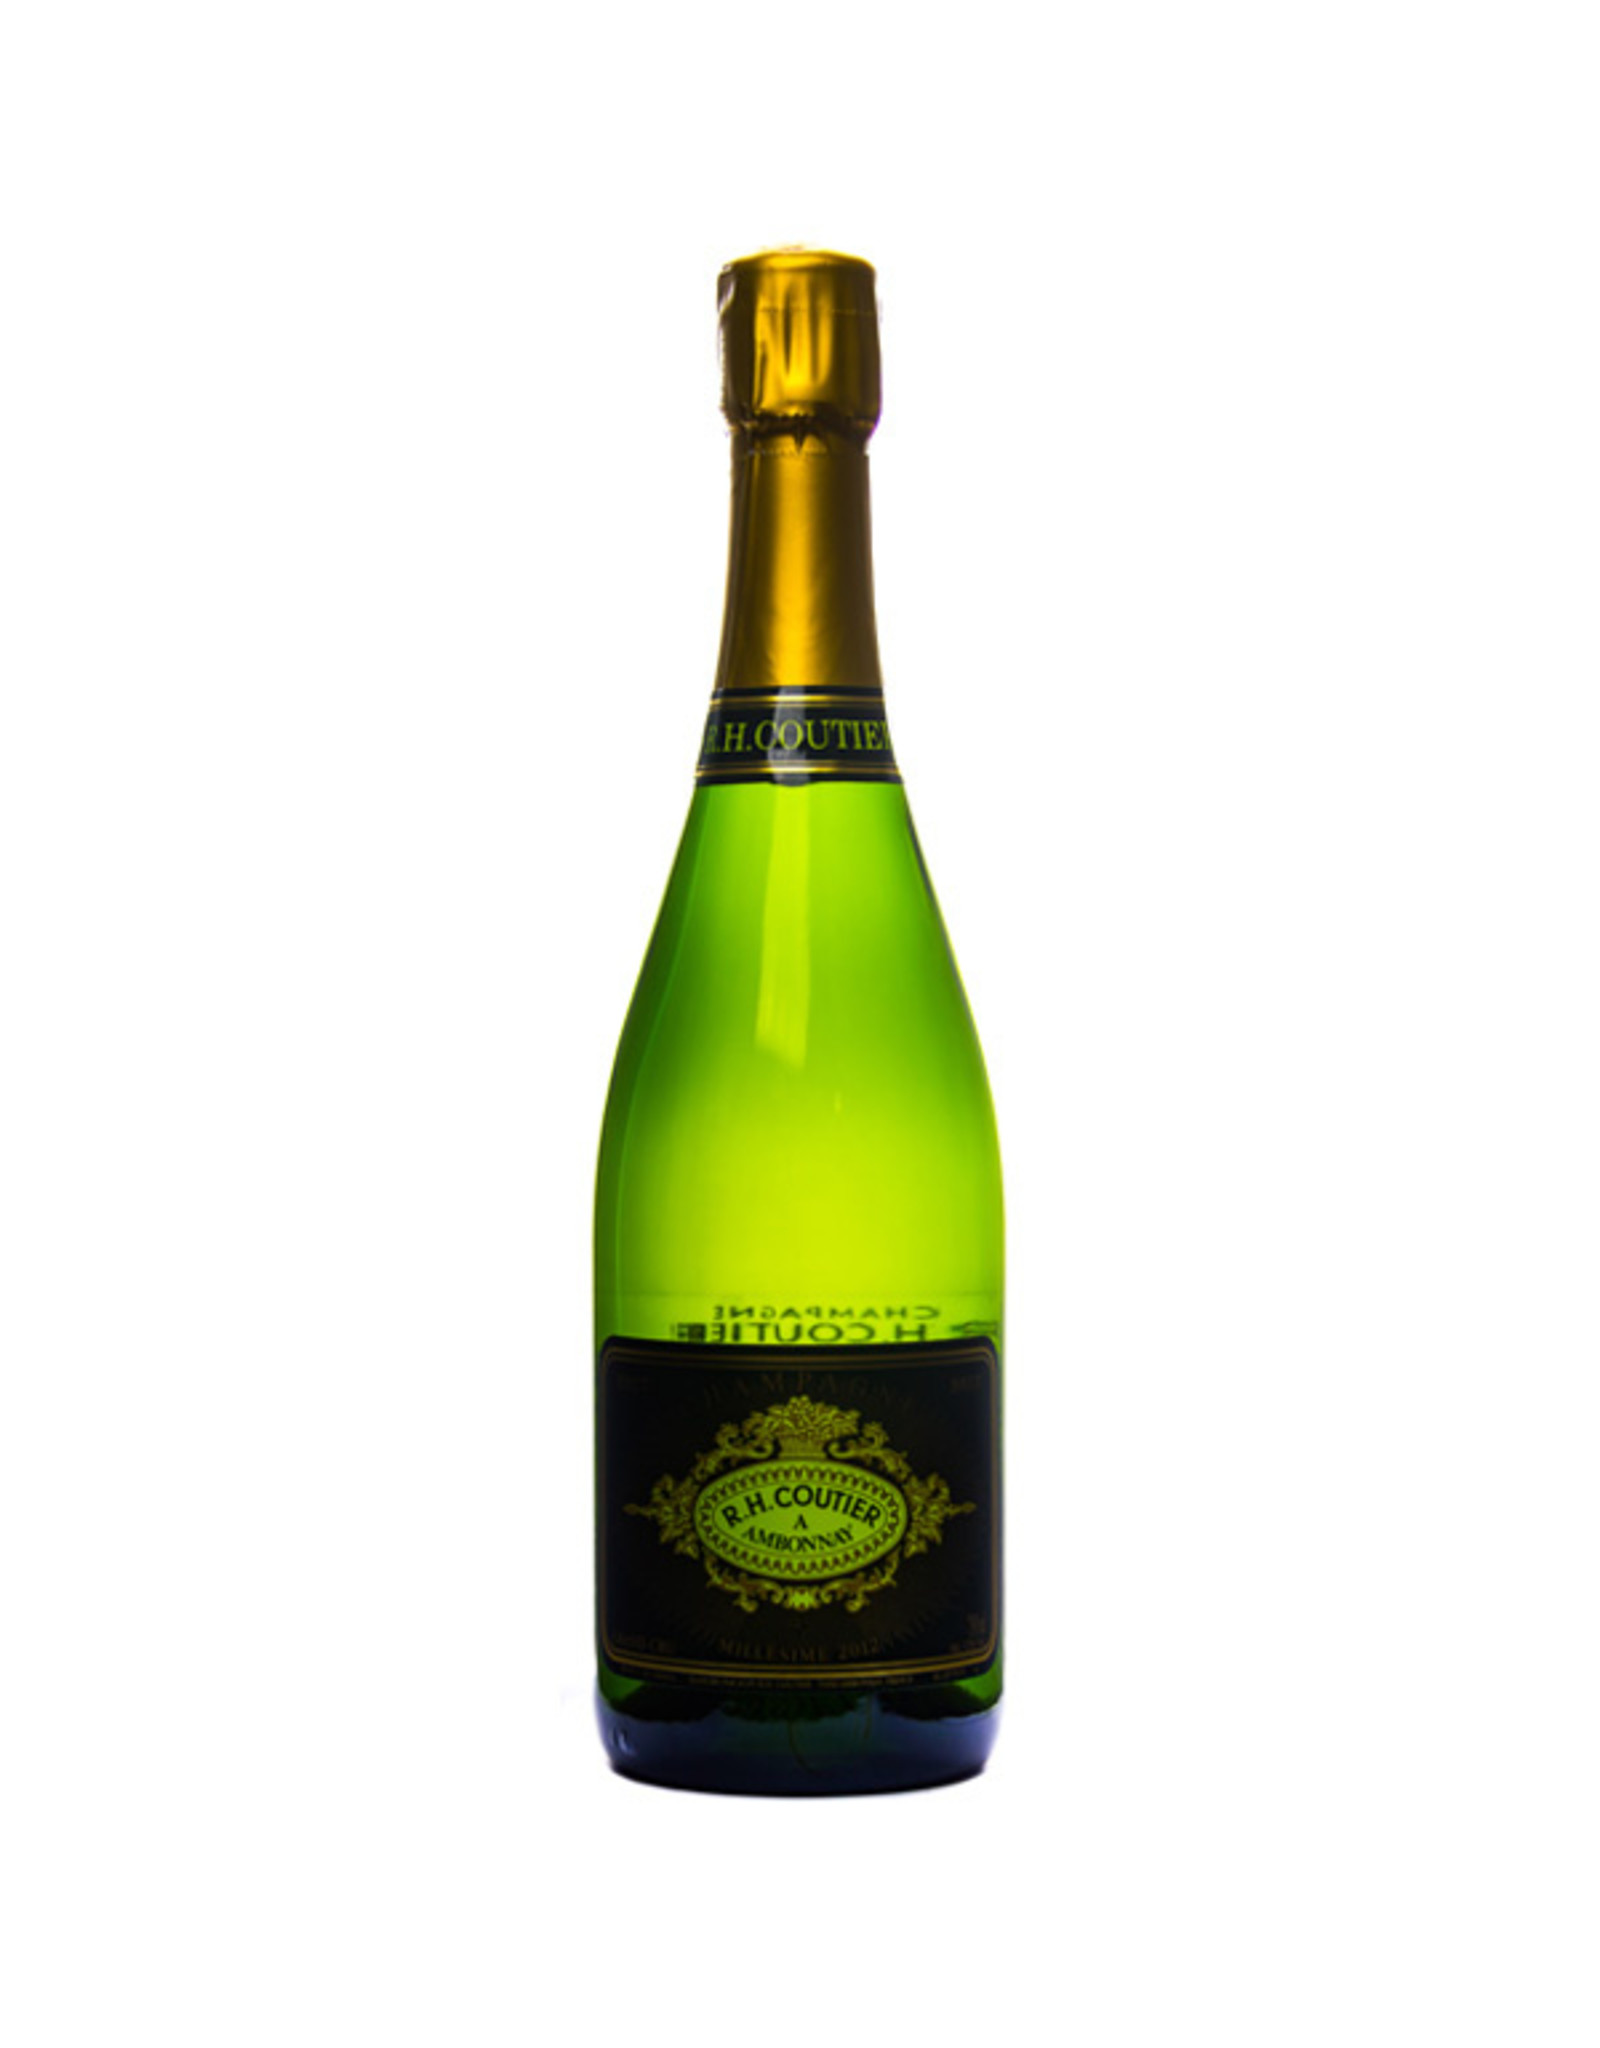 R.H. Coutier, Ambonnay Coutier Champagne Brut Grand Cru MIllésime 2012, Ambonnay